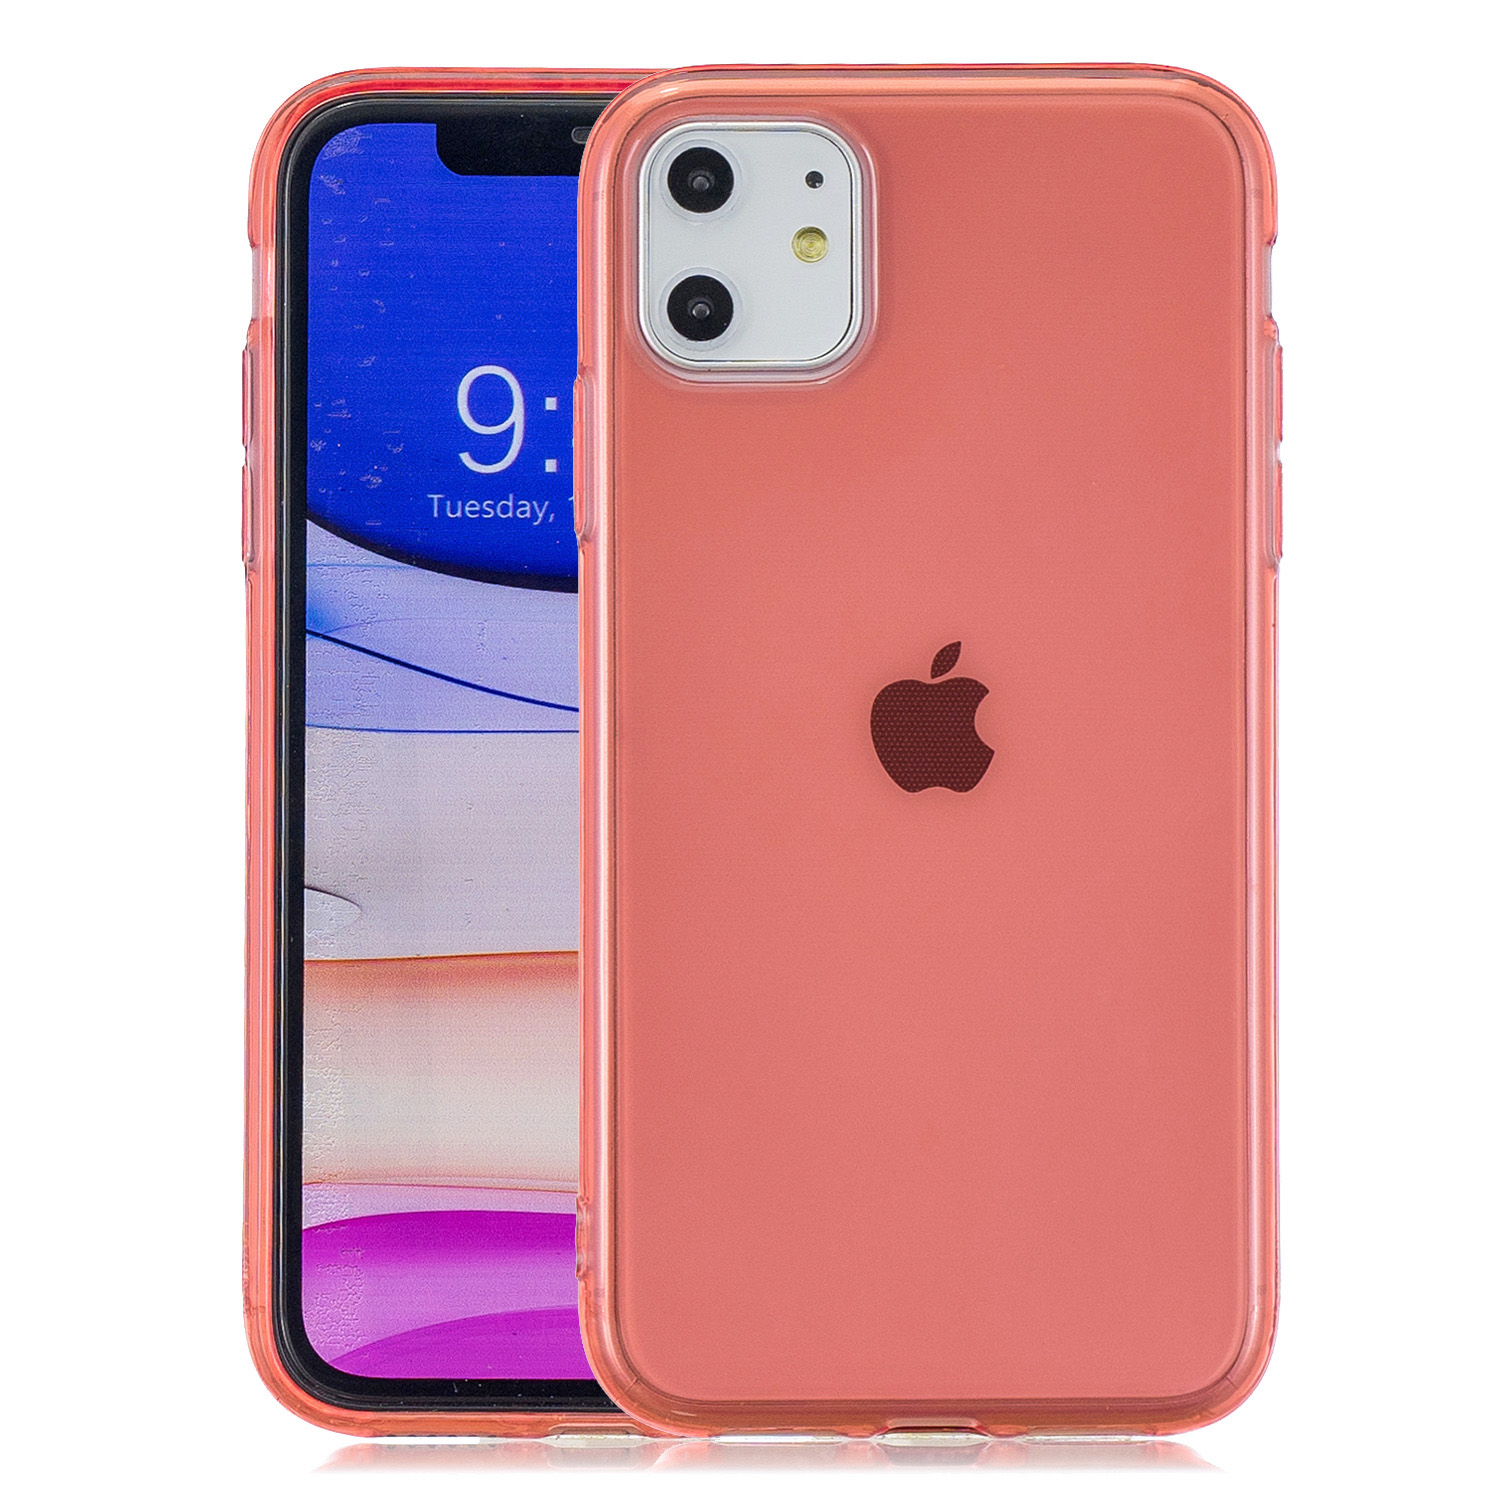 for iPhone 11 / 11 Pro / 11 Pro Max Clear Colorful TPU Back Cover Cellphone Case Shell Red